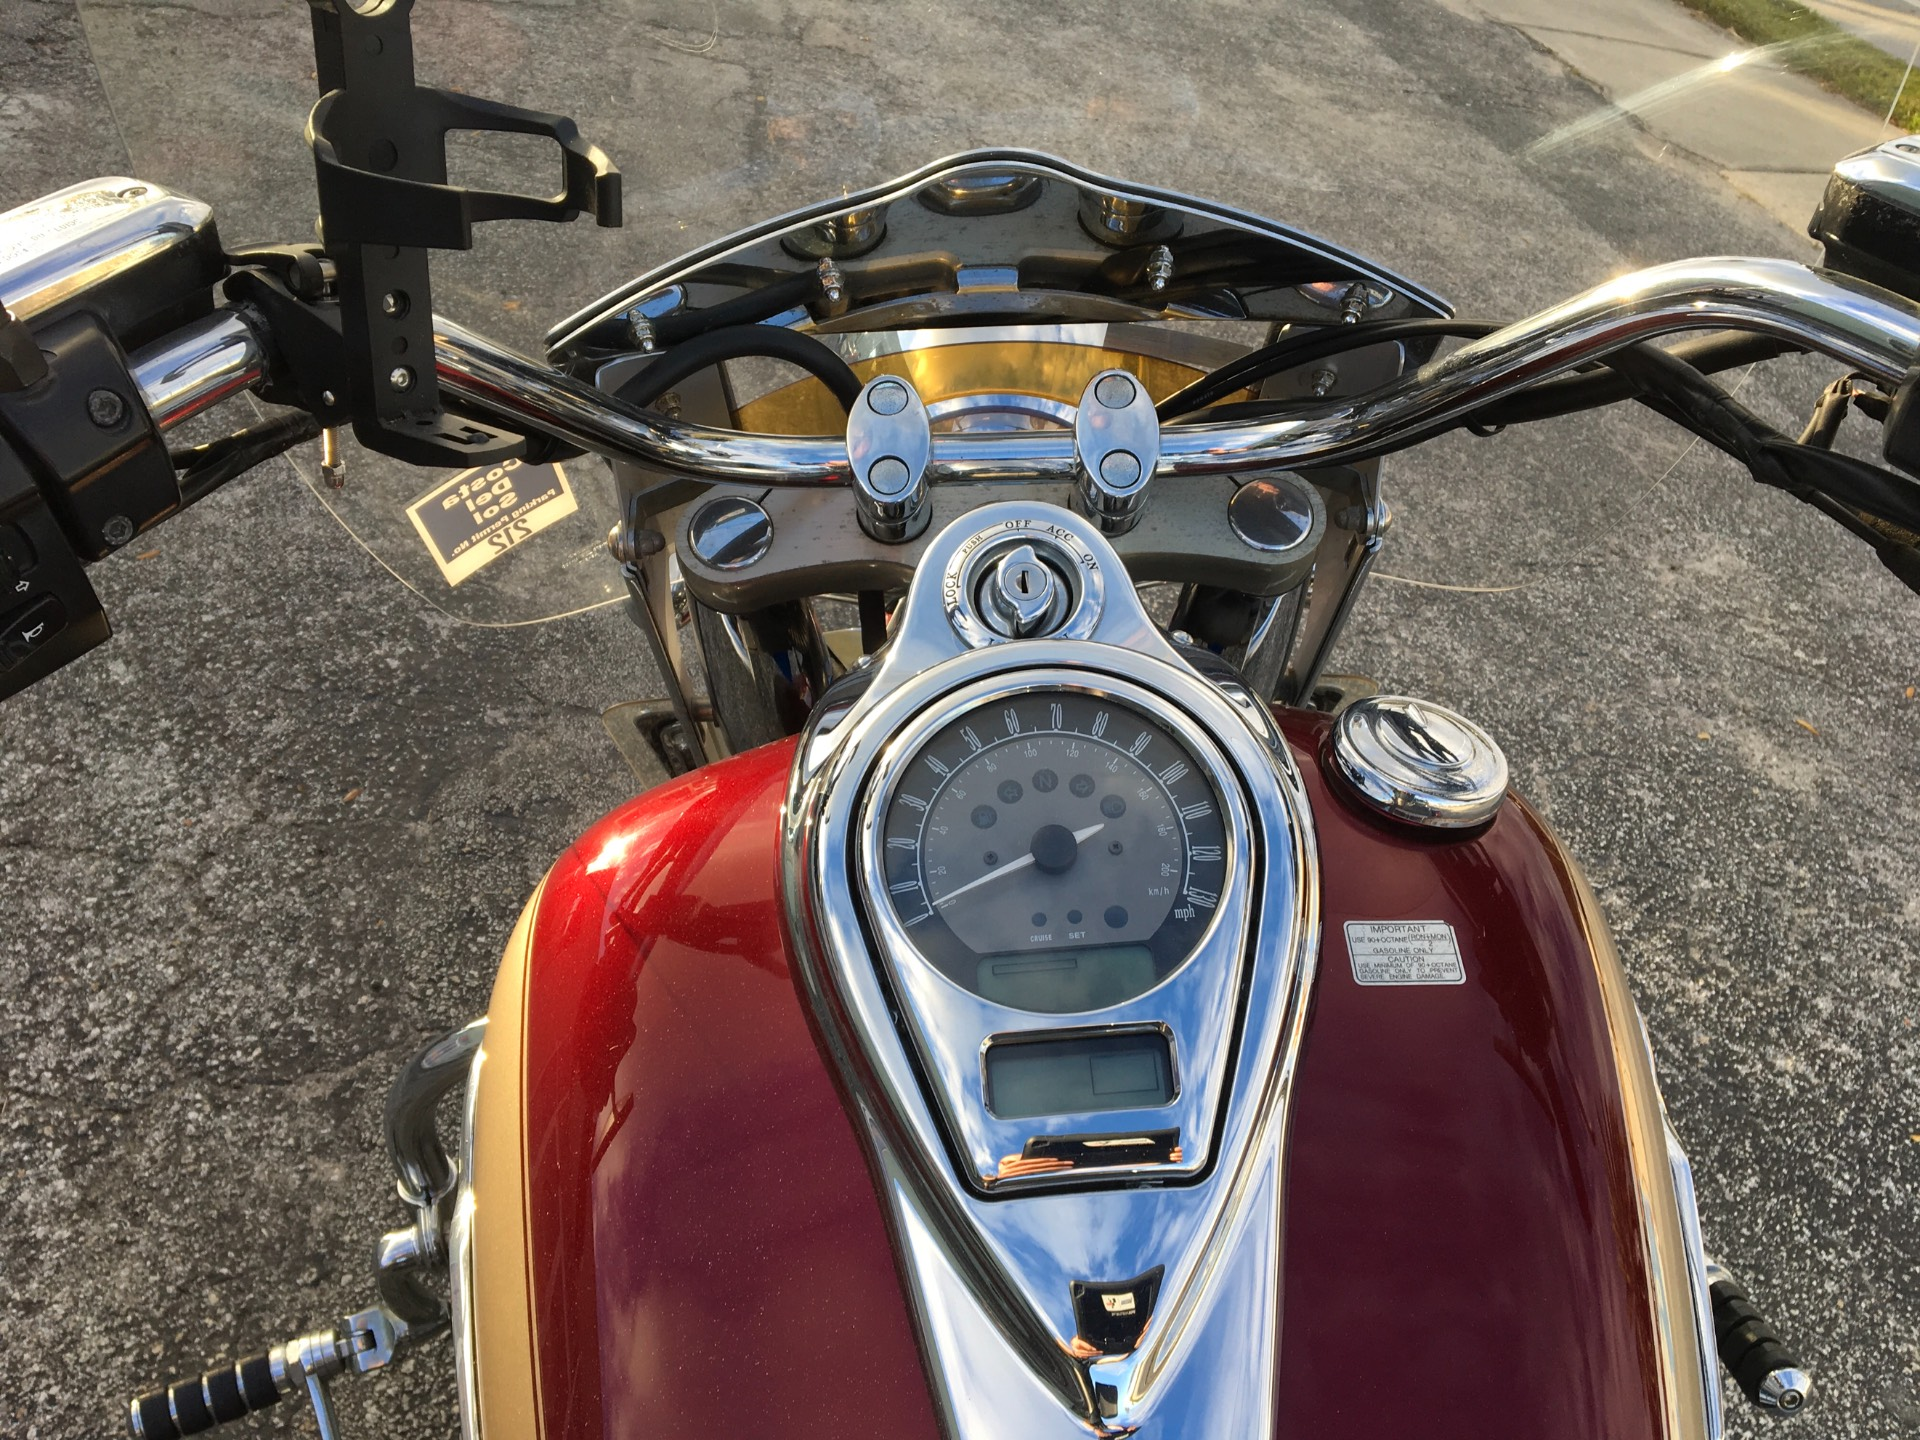 2009 Kawasaki Vulcan Nomad in Cocoa, Florida - Photo 10